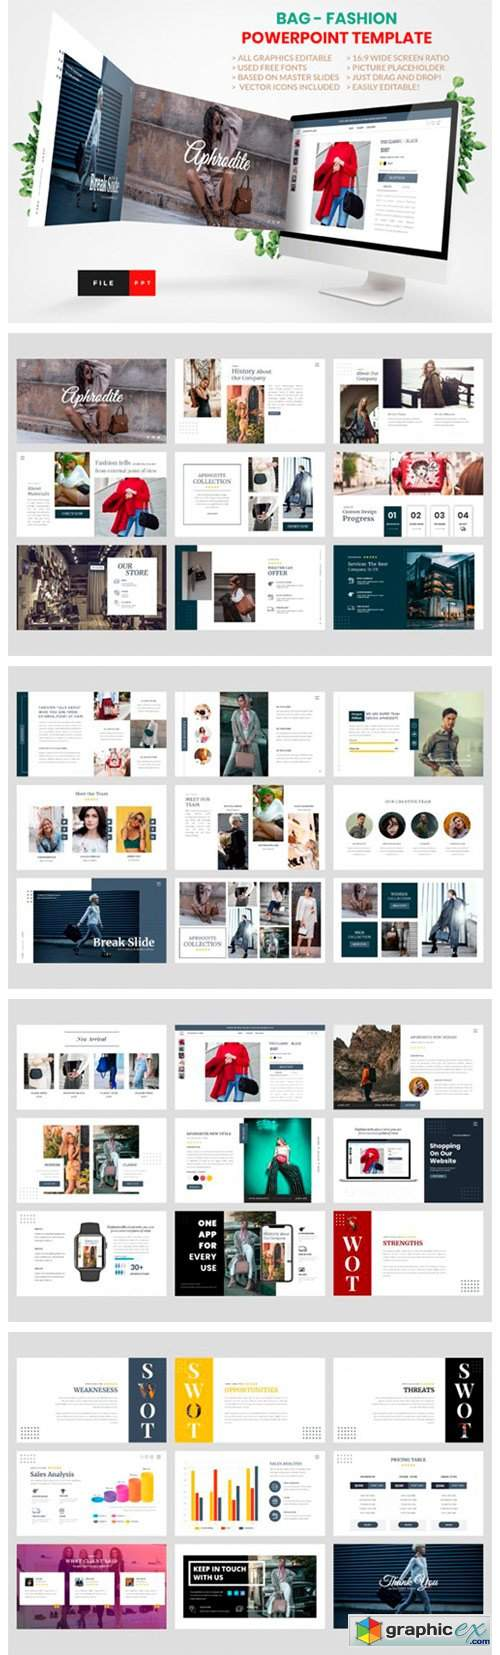 Bag Fashion PowerPoint Template